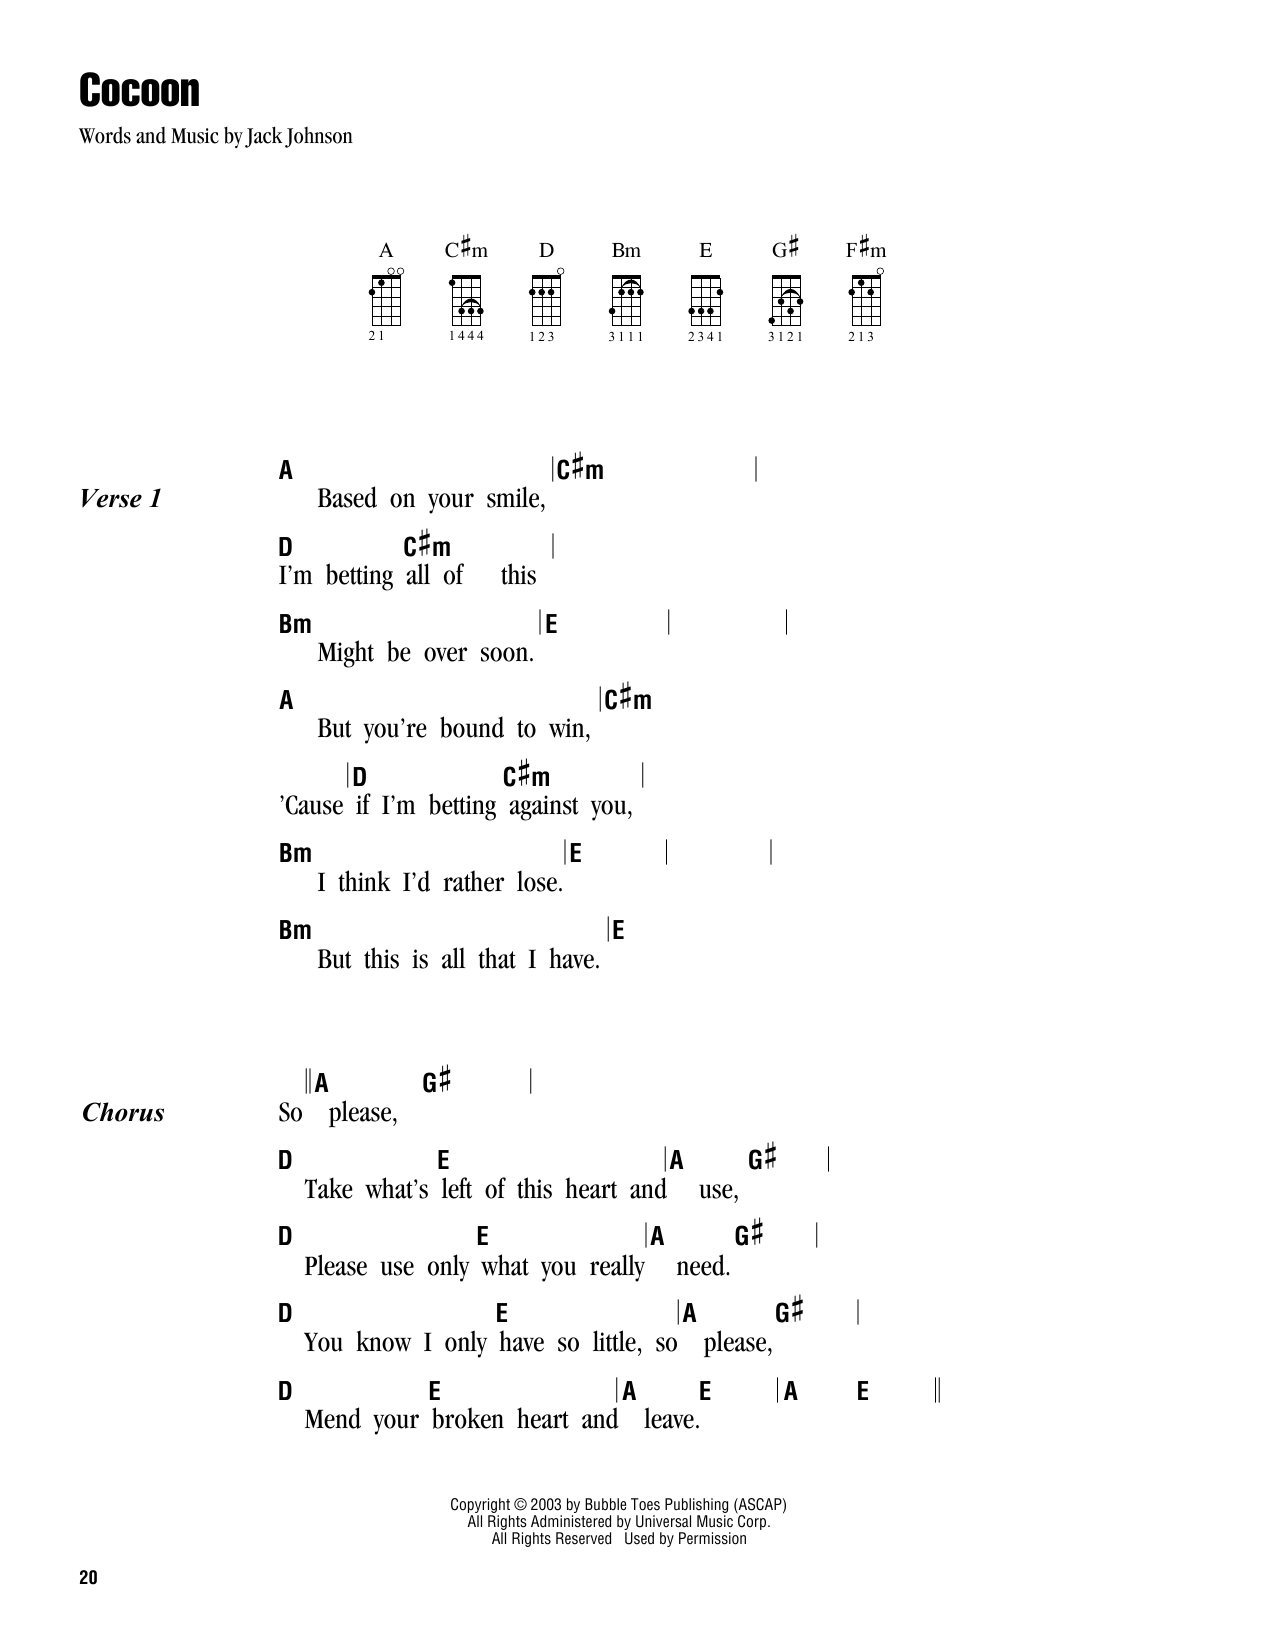 Cocoon sheet music by Jack Johnson (Ukulele with strumming patterns u2013 162897)